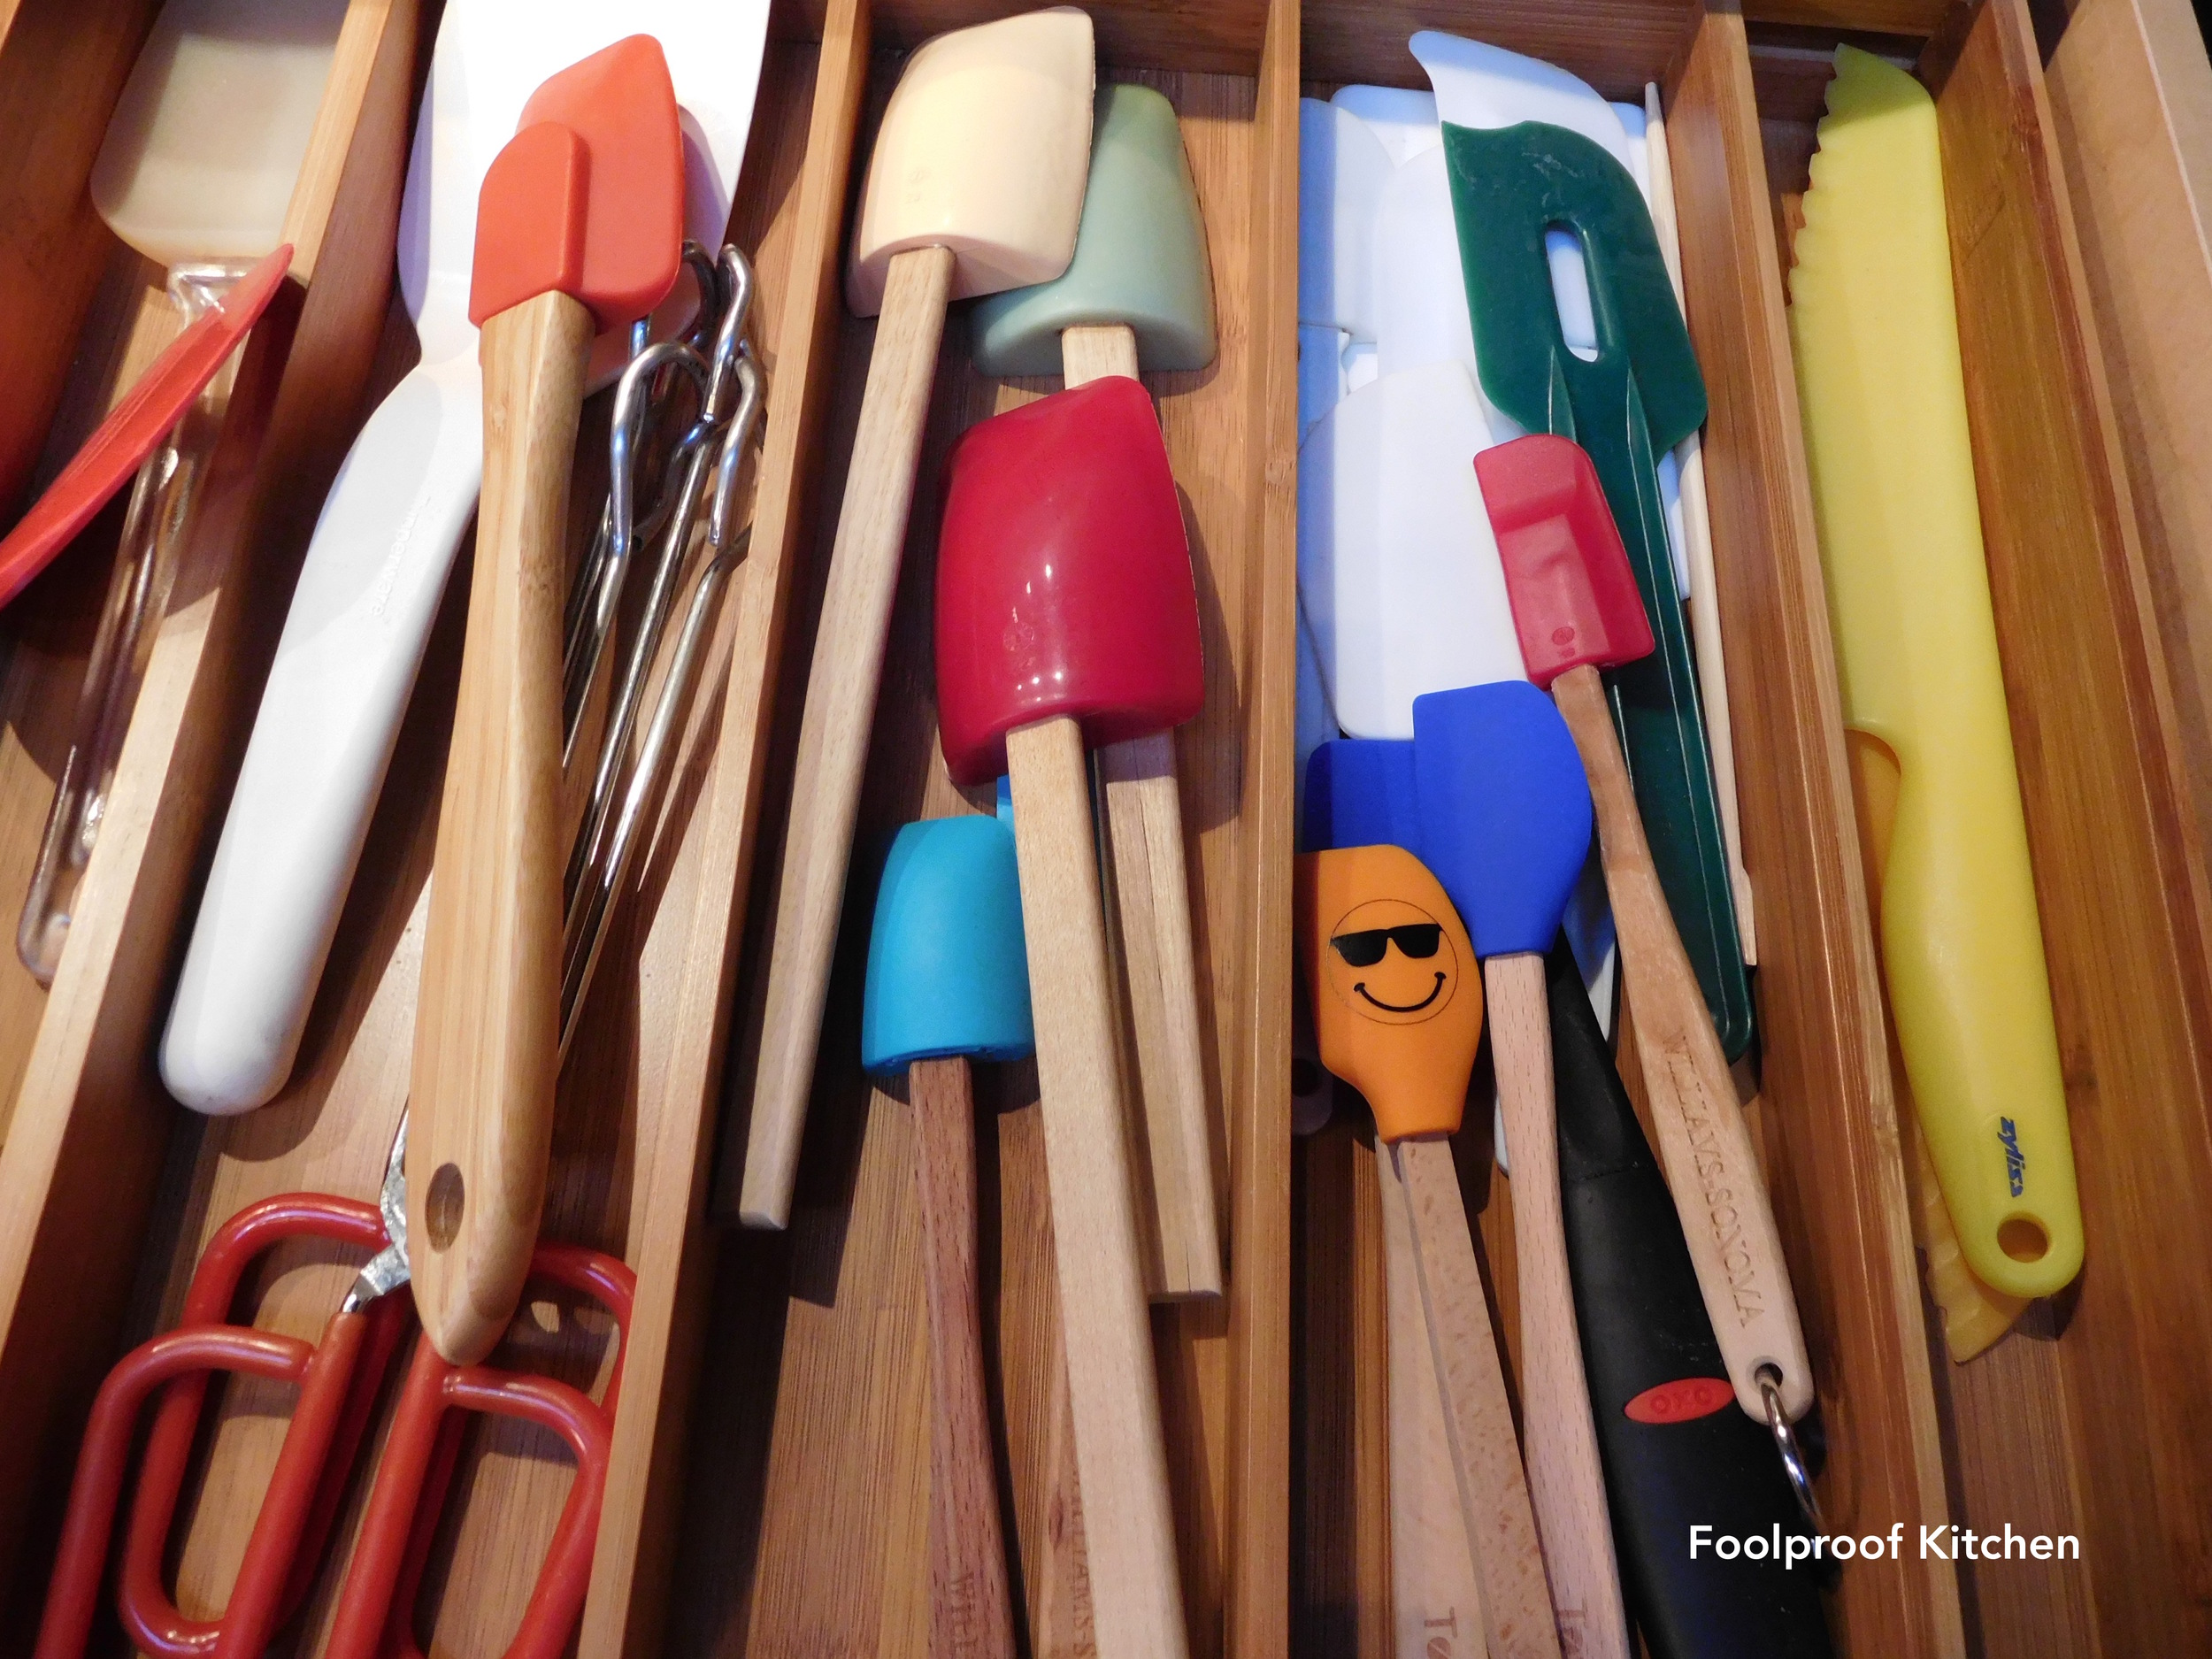 Drawer full of spatulas.  I have a soft spot for smiling objects in my kitchen!